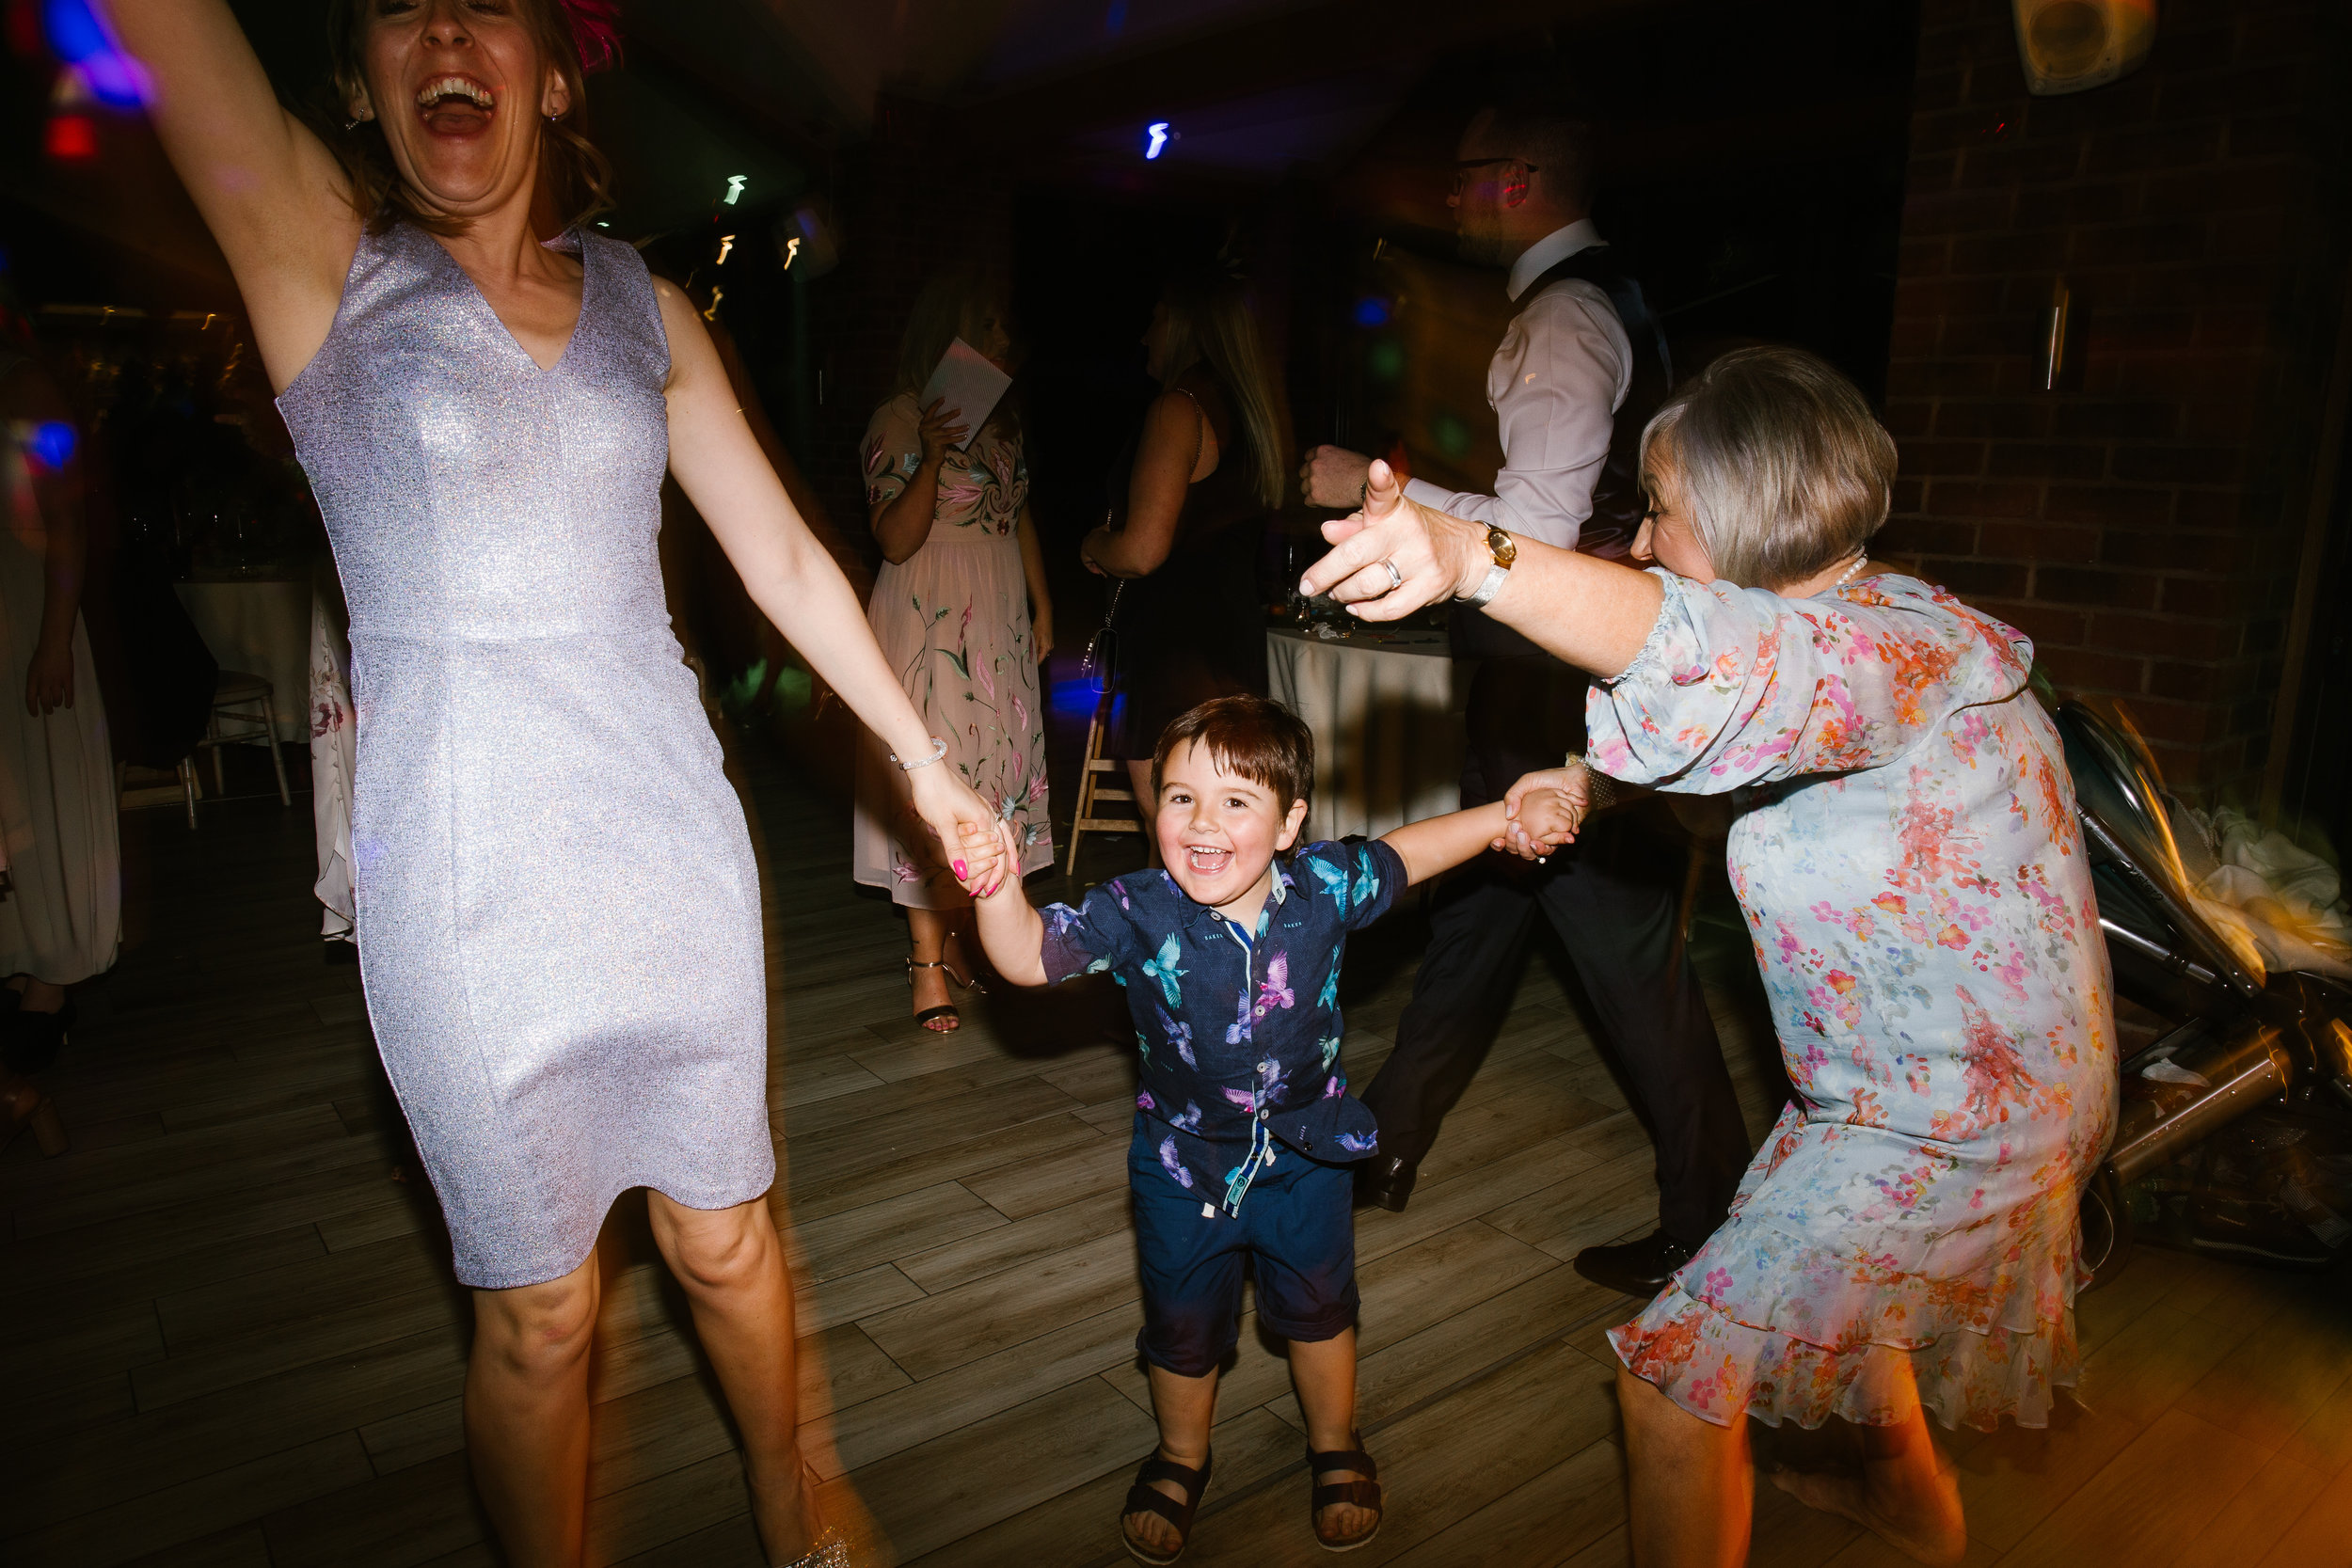 little boy jumping up and down on the dance floor at the party music